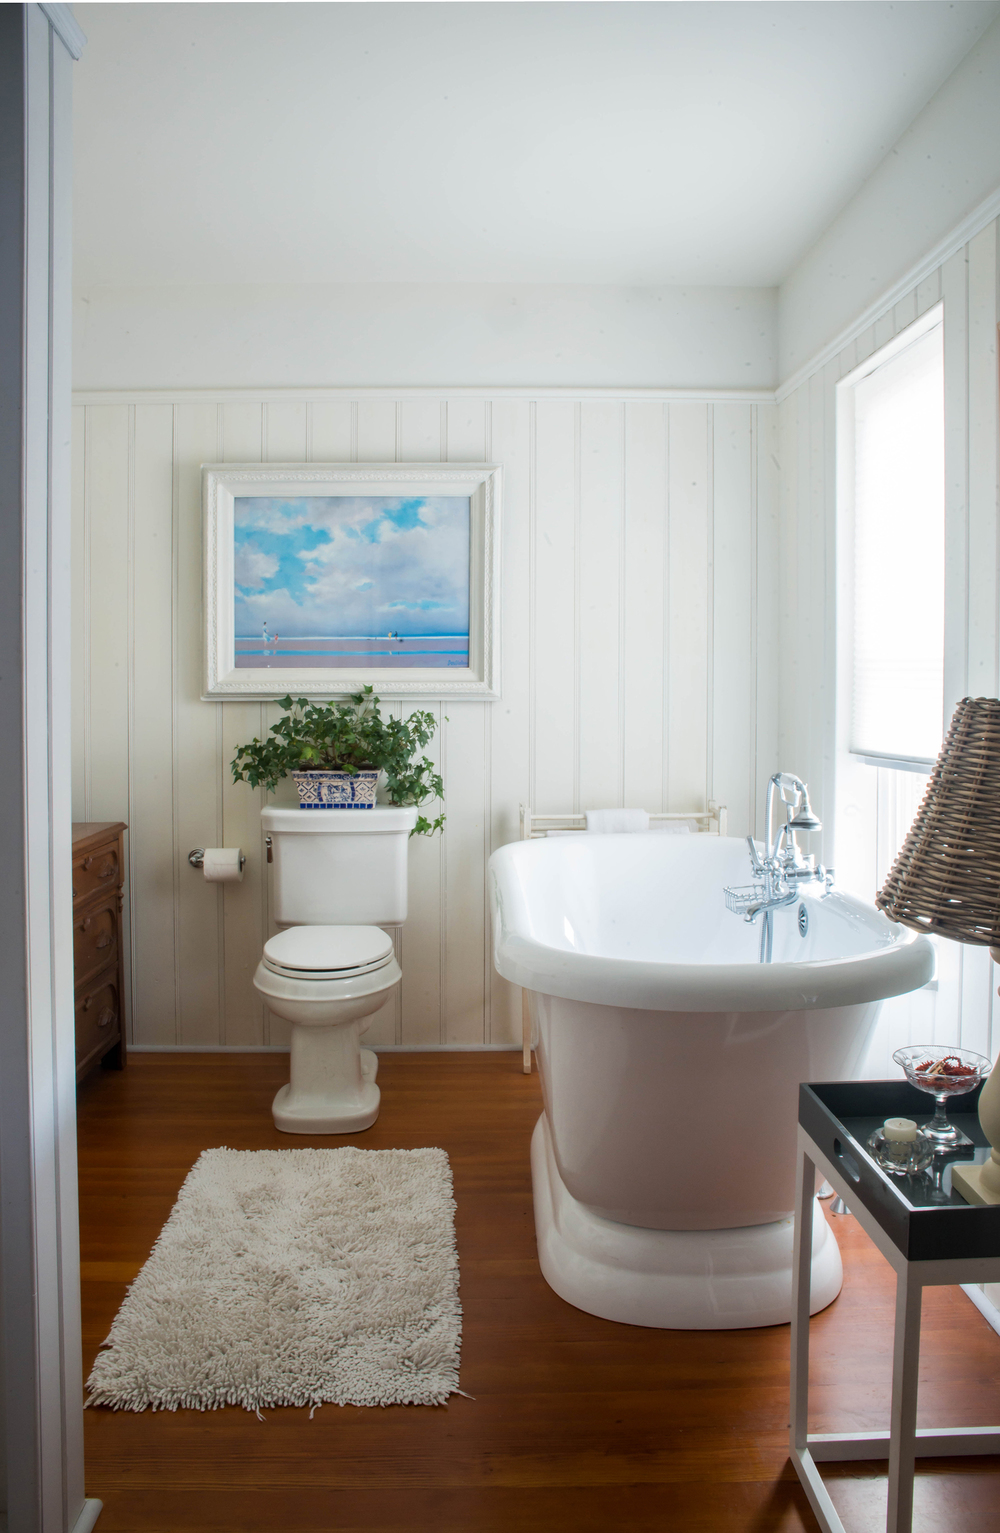 CONNECTICUT MASTER BATH - WOODSTOCK CT